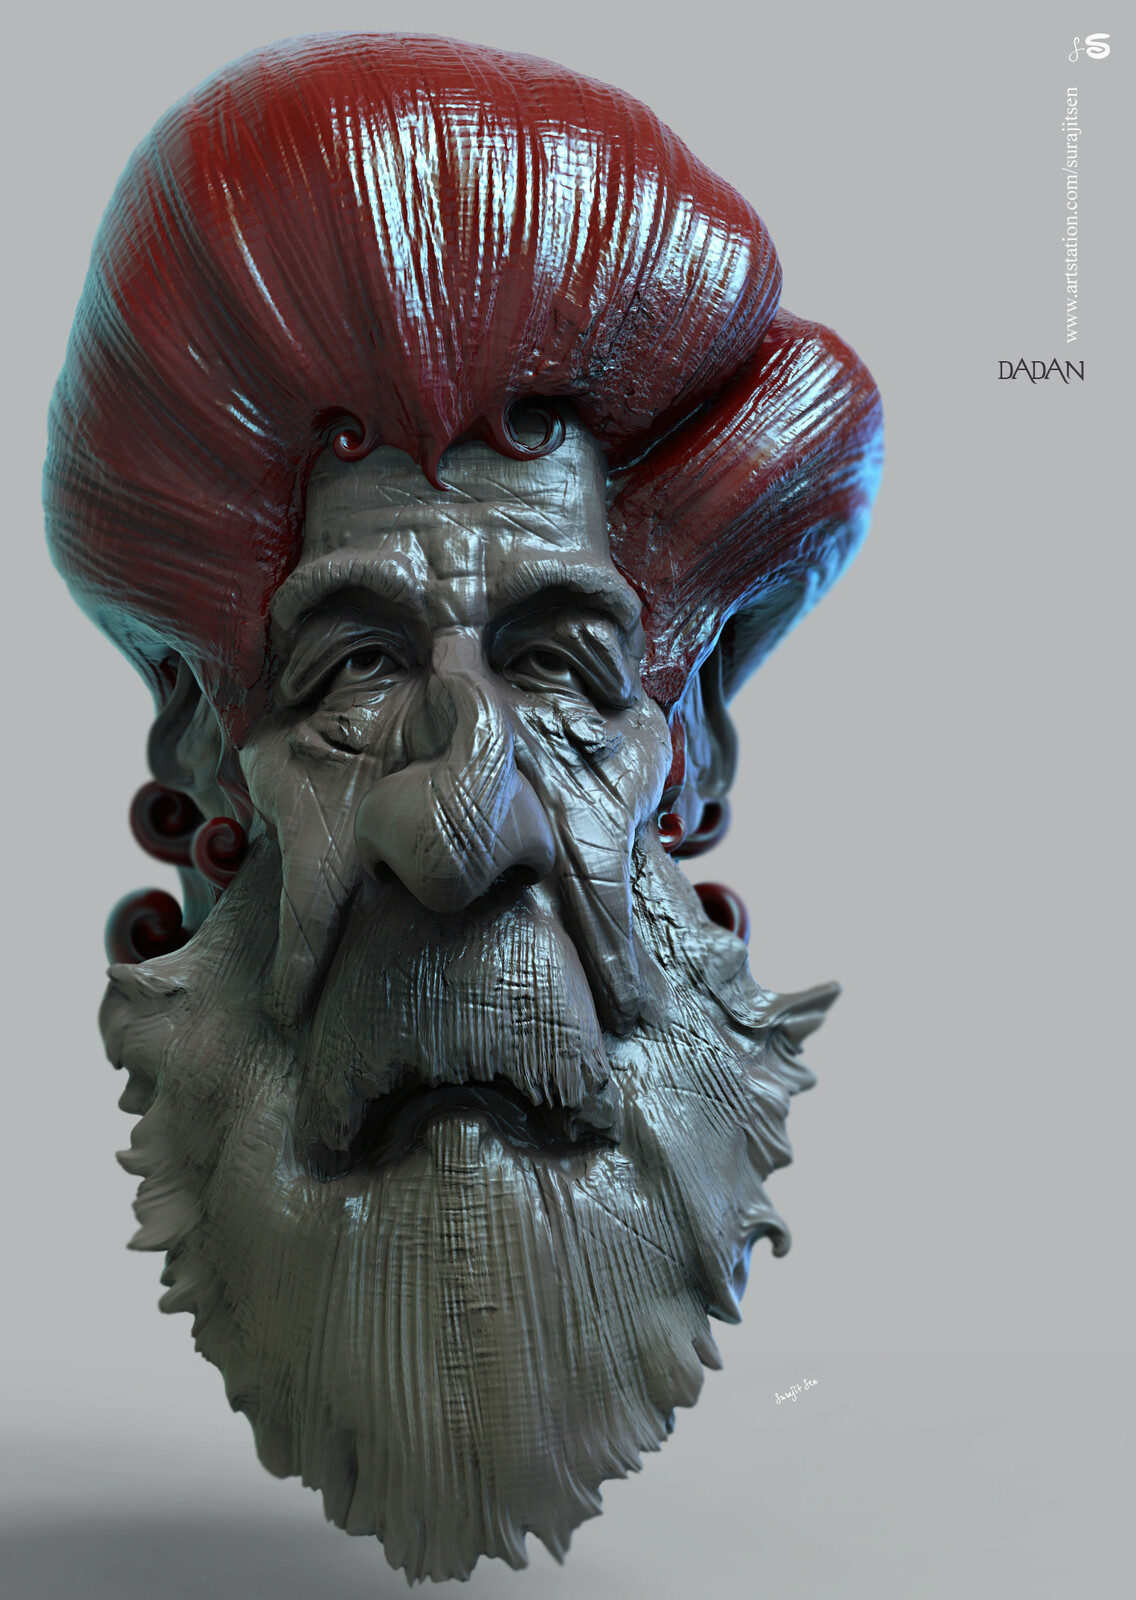 #doodle My weekend doodle.... Played with brushes. Dadan Digital Sculpture.